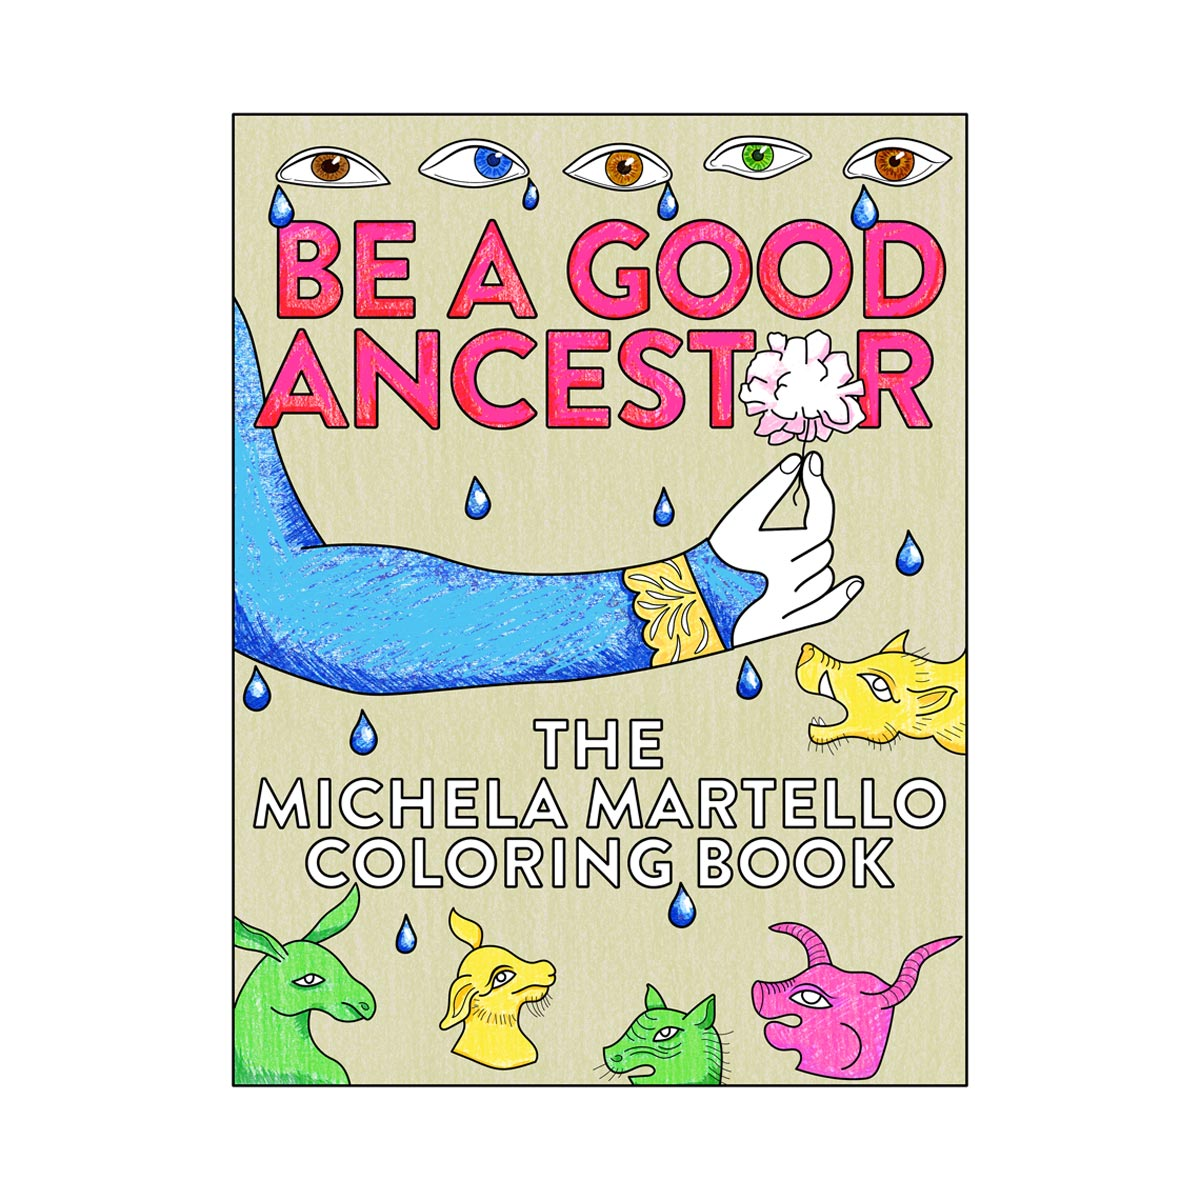 Be A Good Ancestor: The Michela Martello Coloring Book